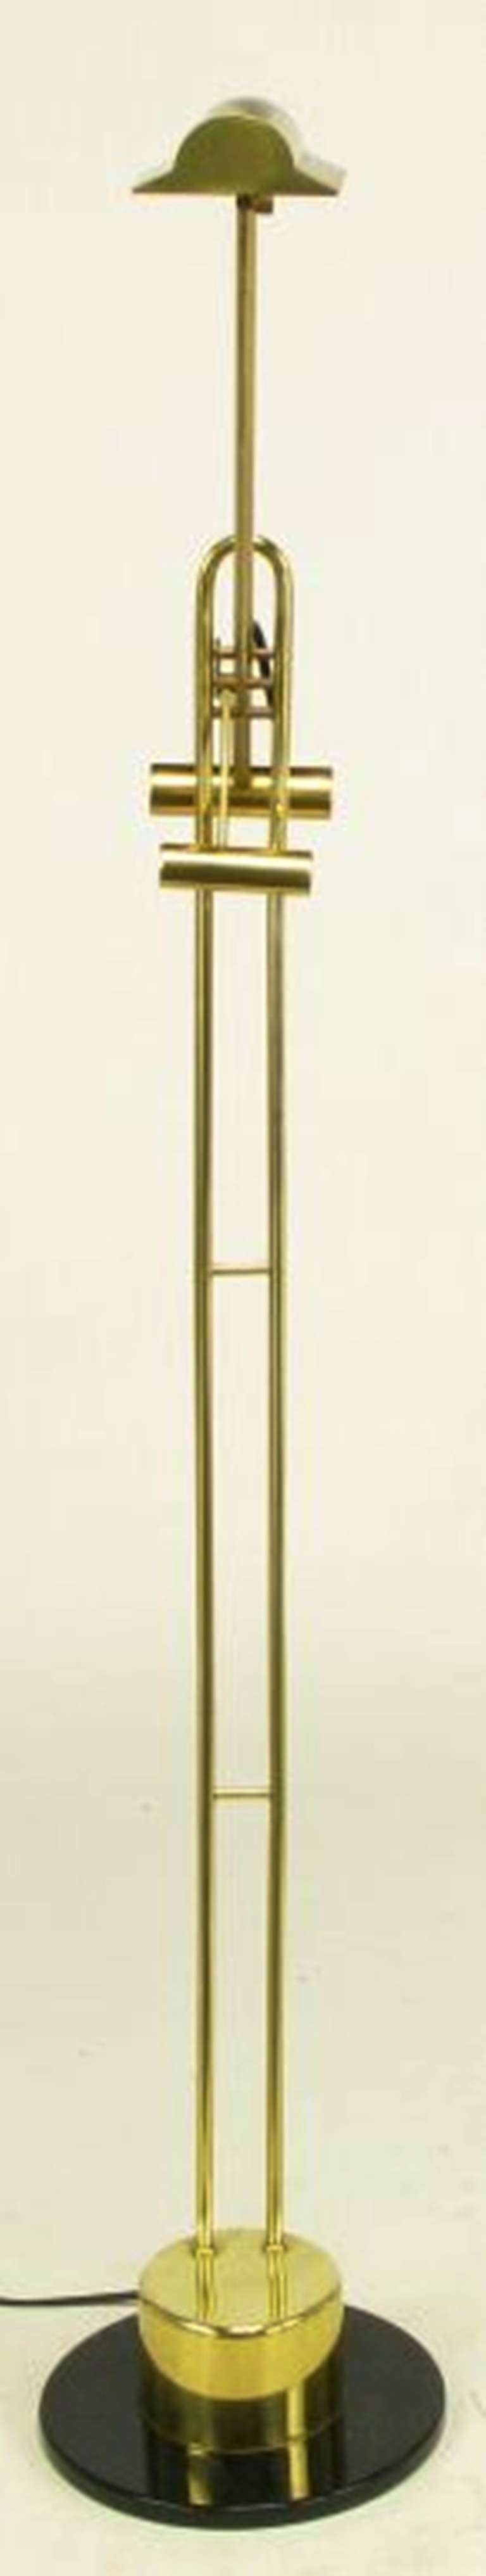 Postmodern Articulated Brass and Black Marble Floor Lamp 4